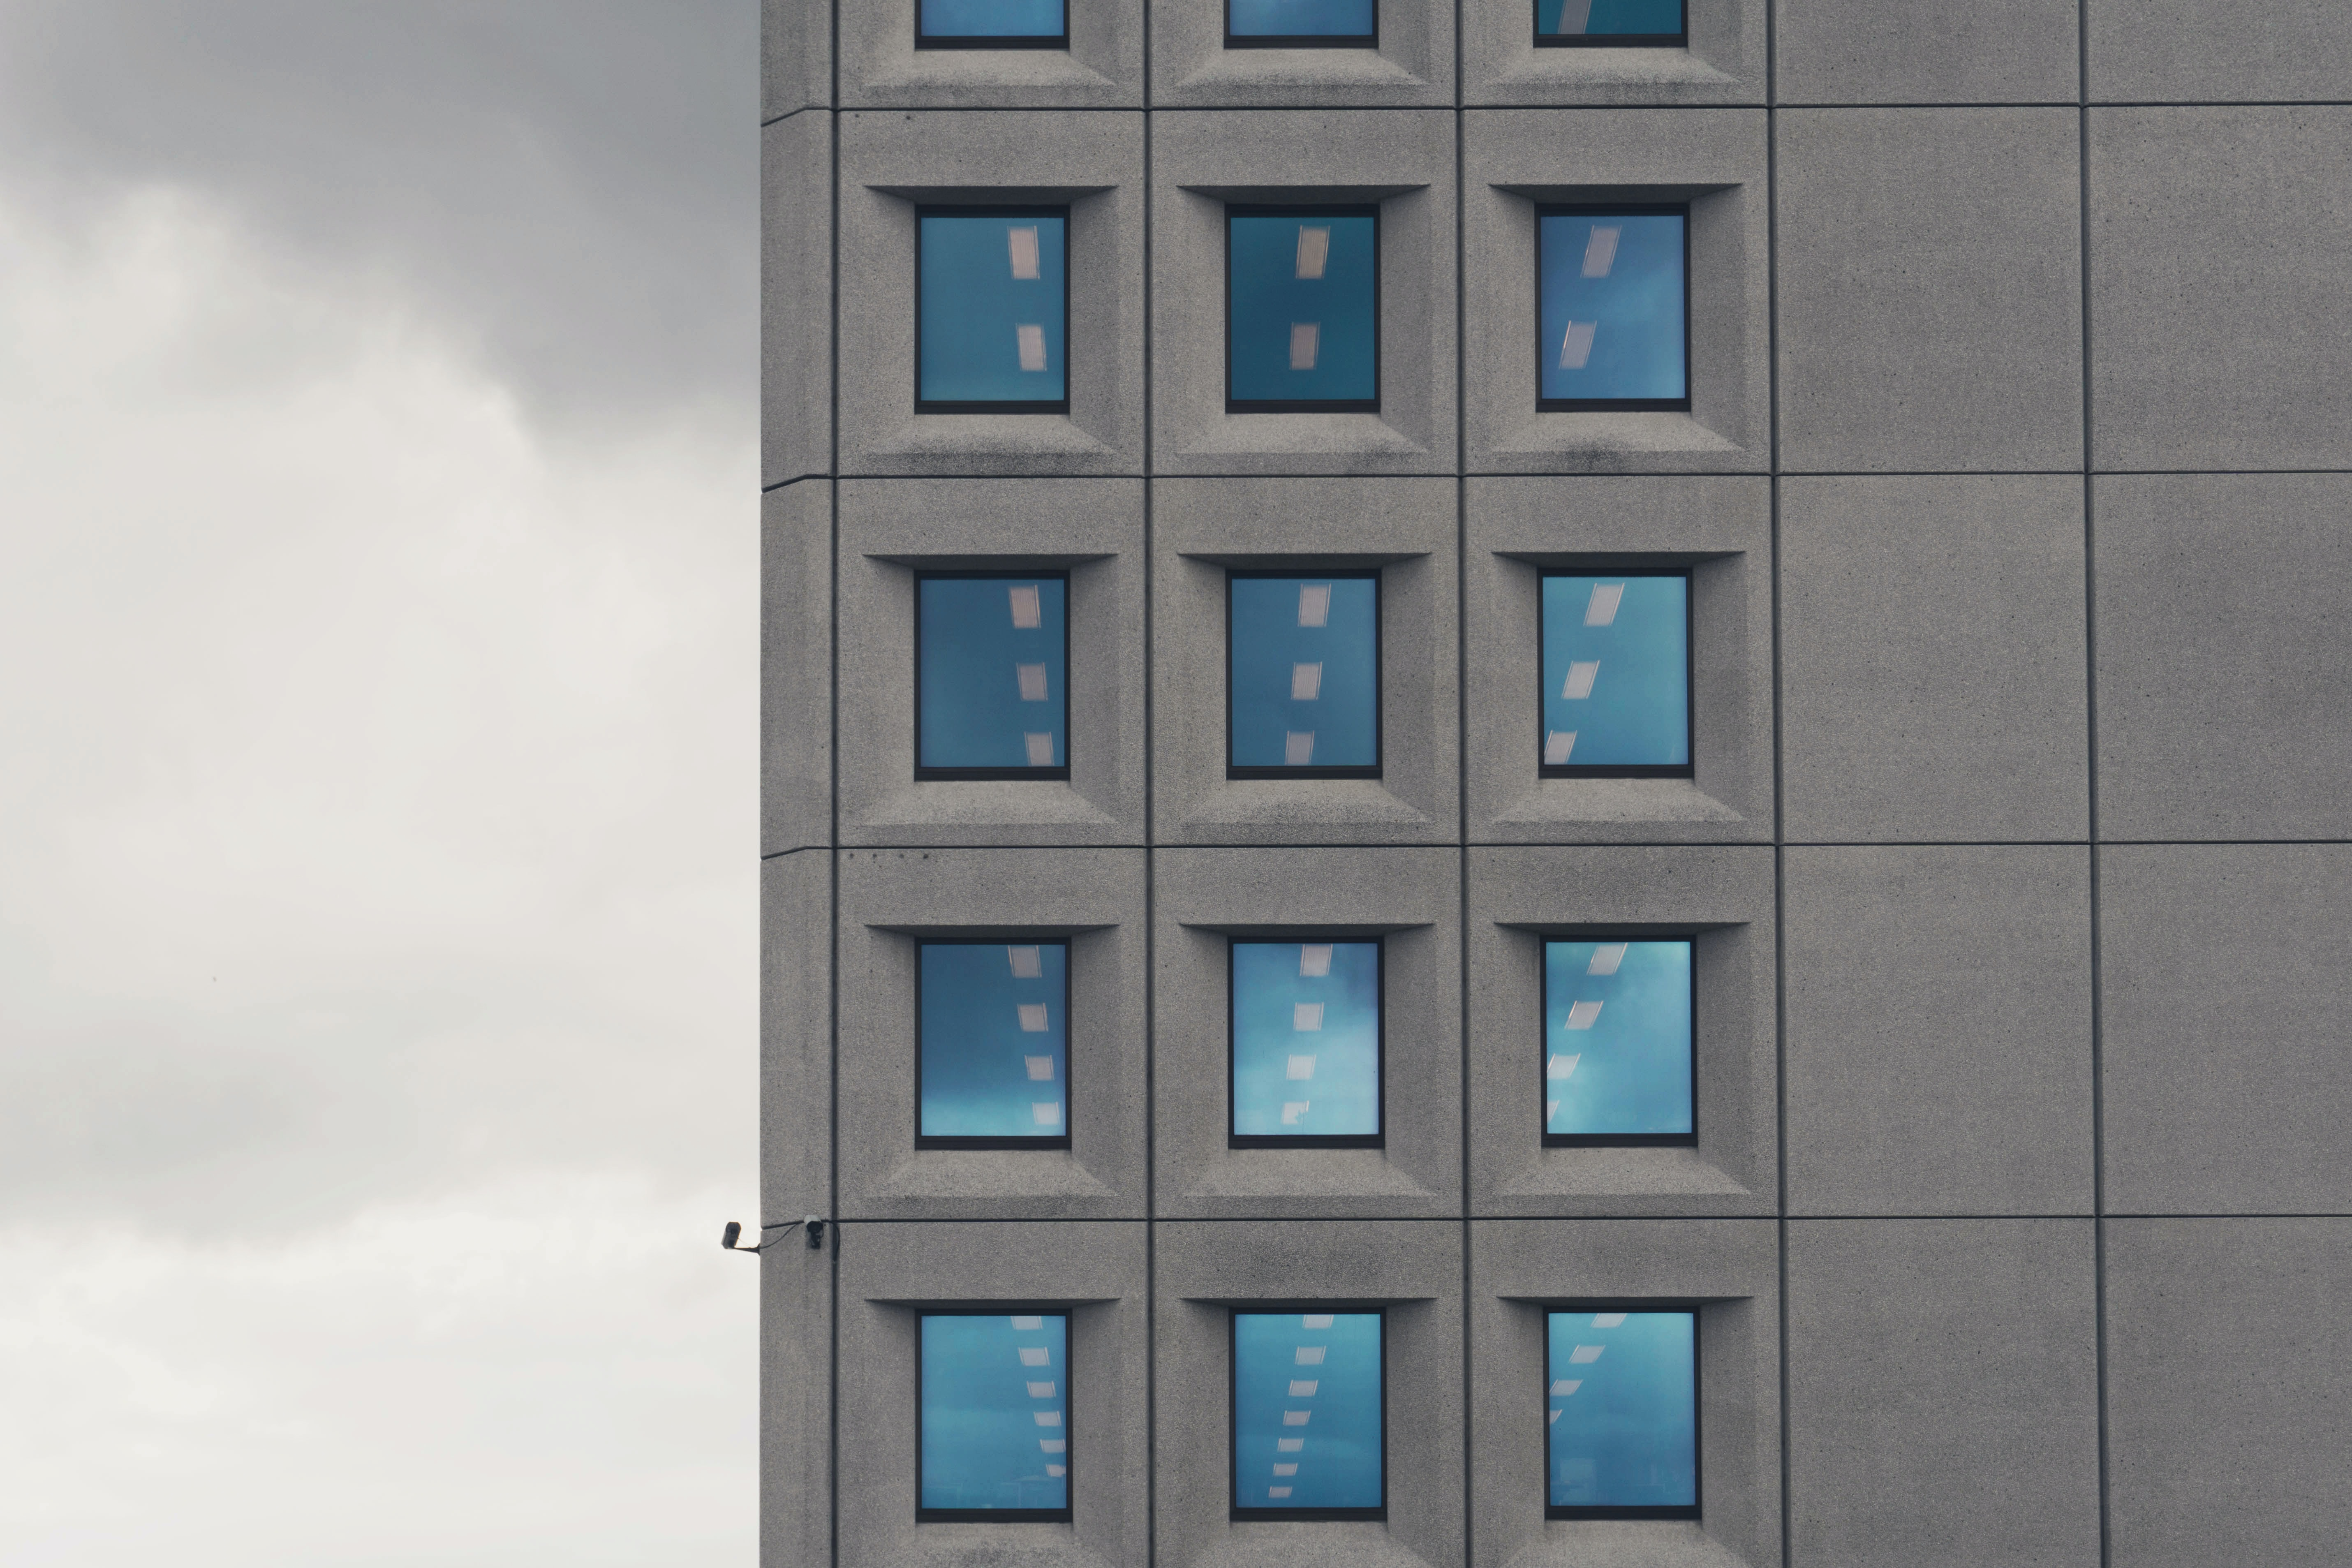 gray and blue cartoon building illustration